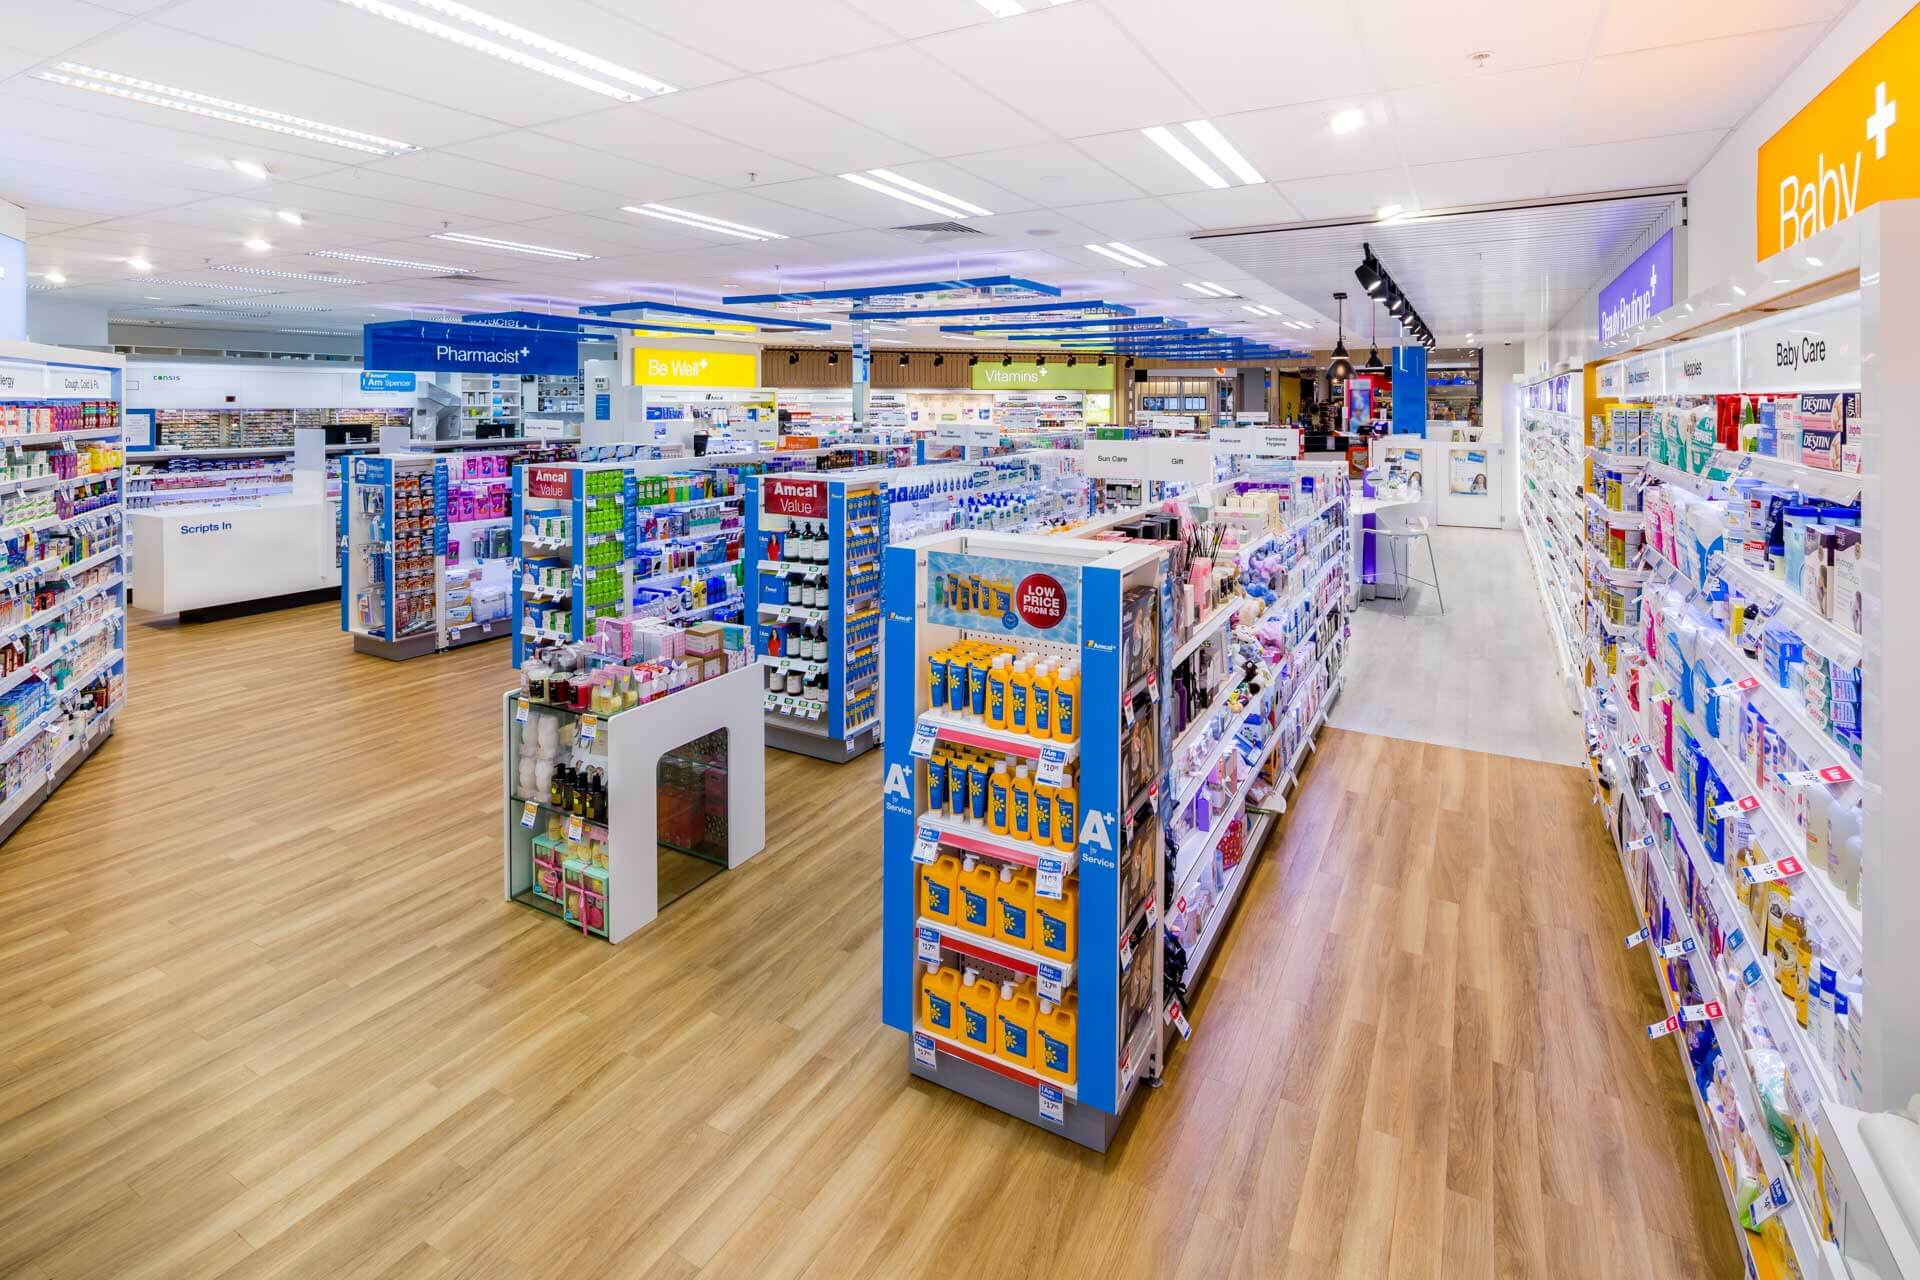 amcal+ pharmacy internal photograph of baby product area and overall store by sigma pharmaceuticals in stud park shopping centre